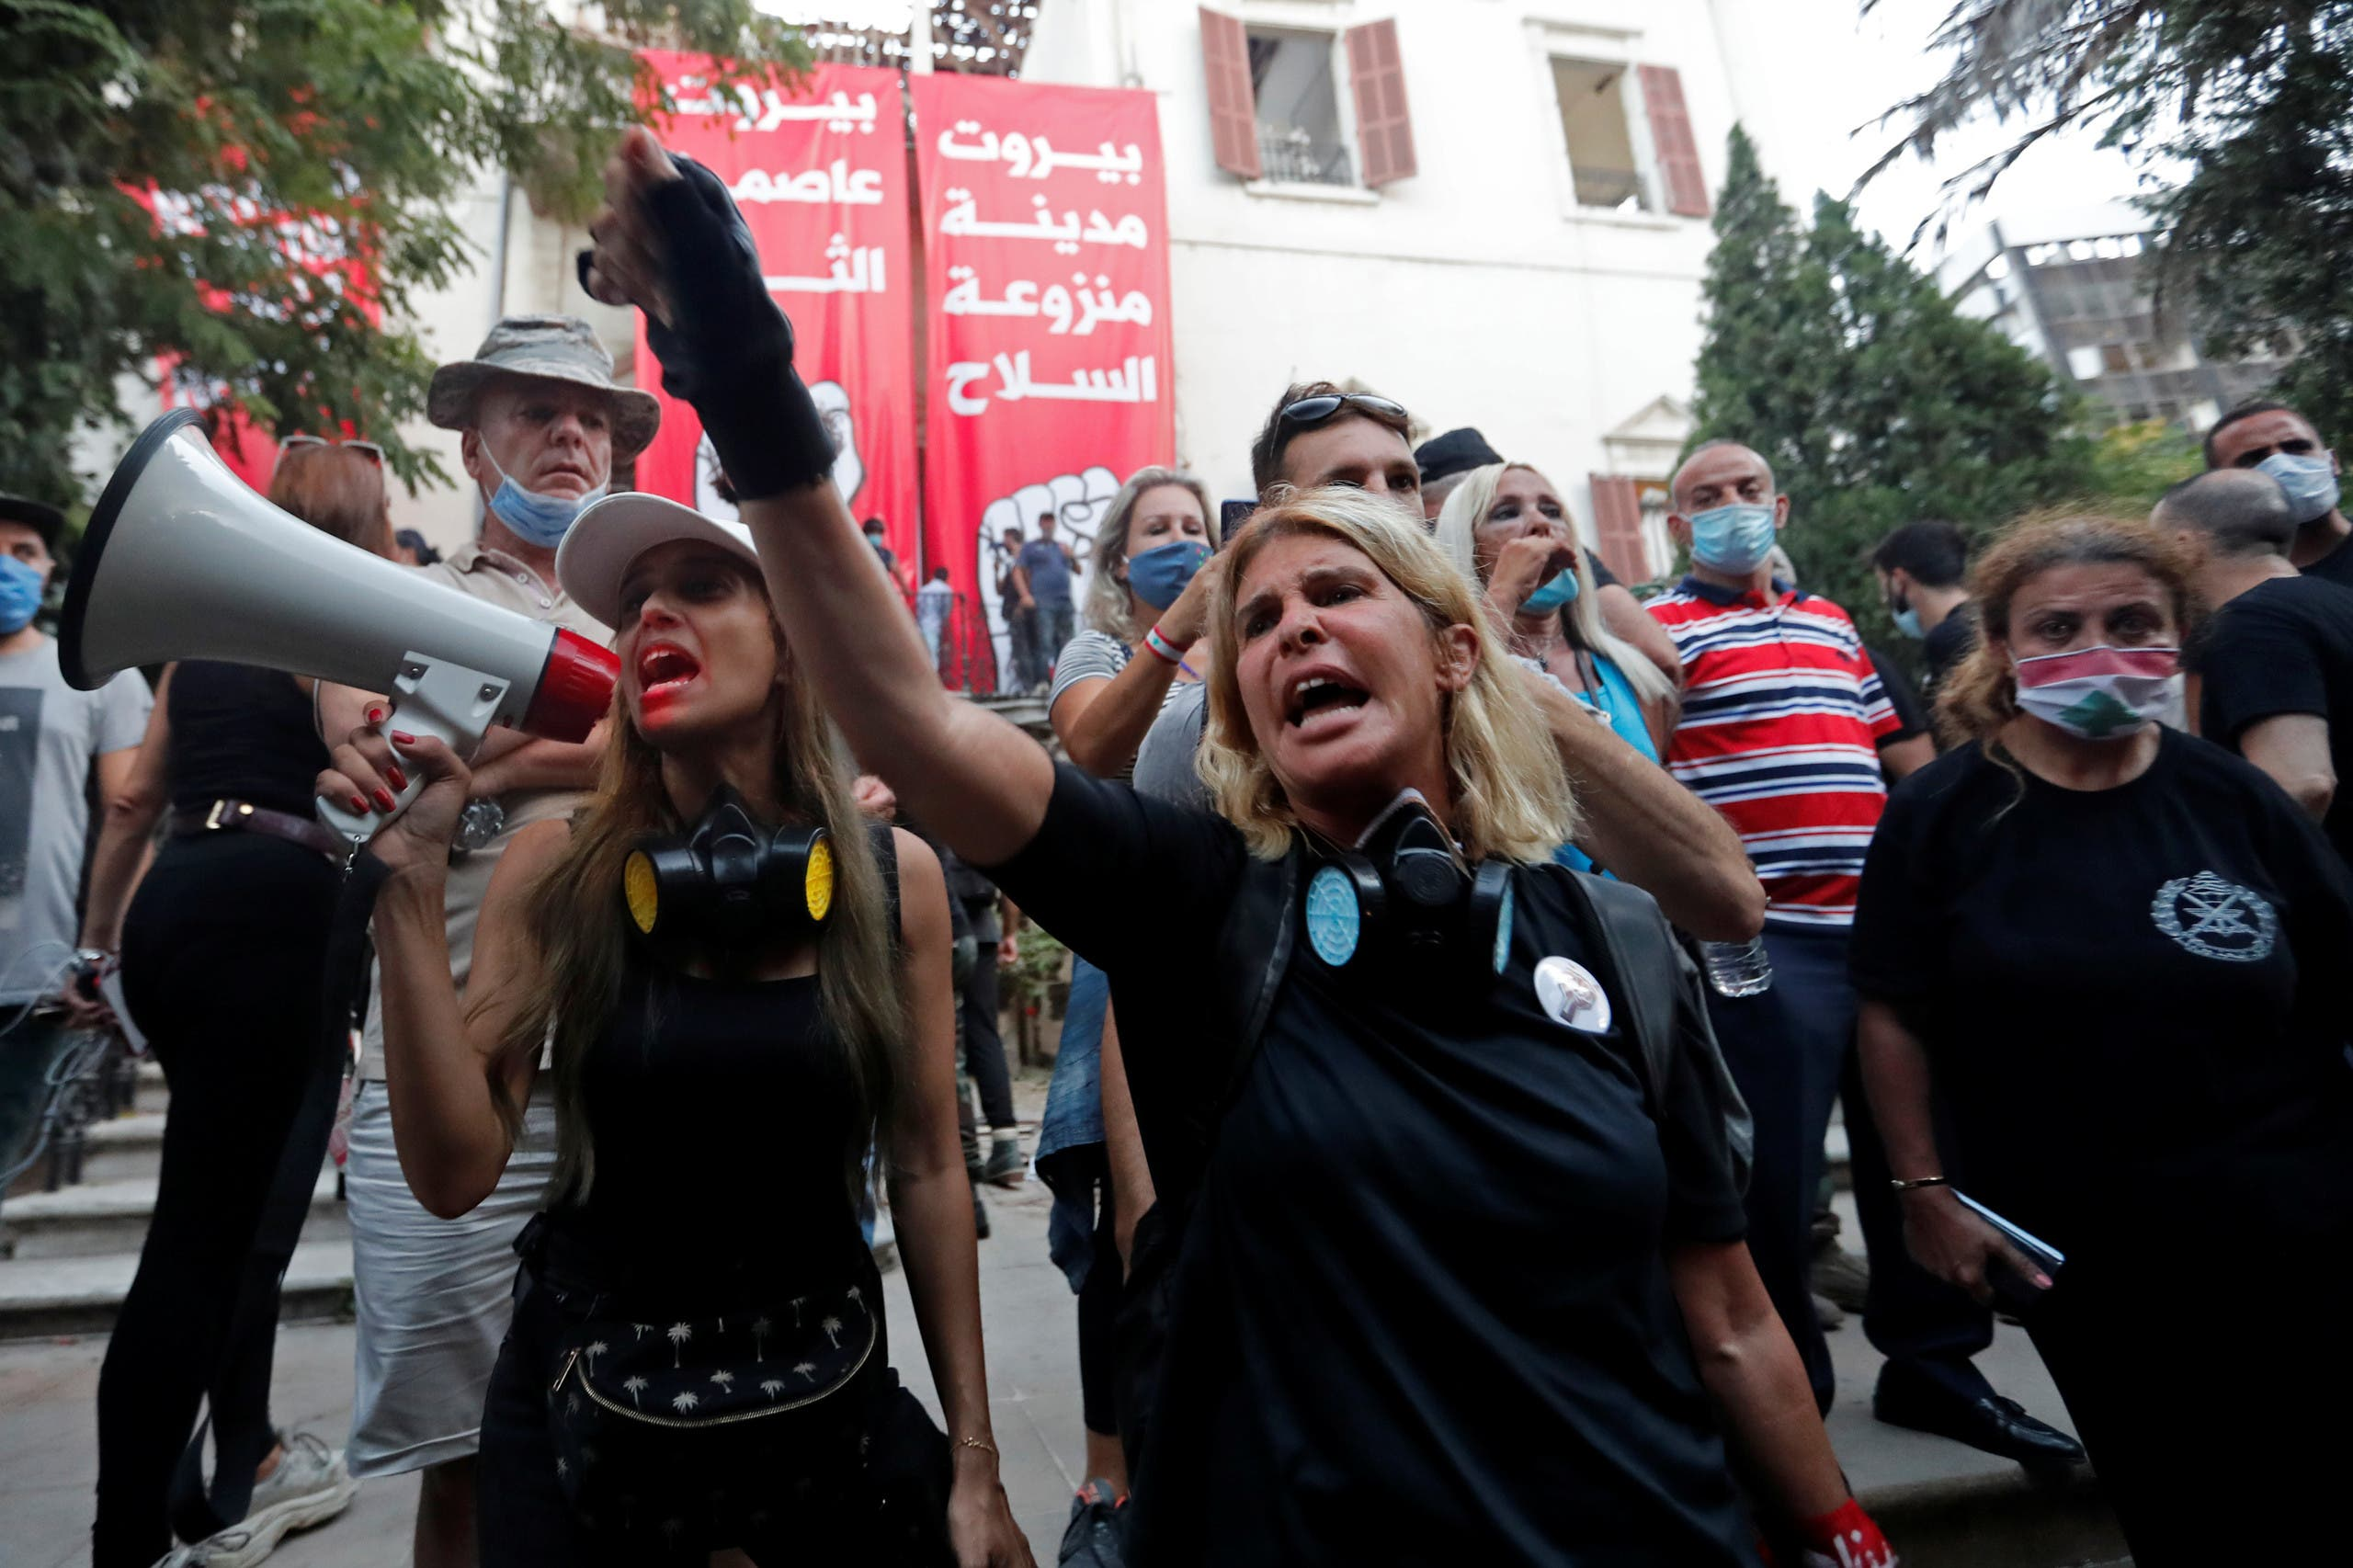 Demonstrators chant slogans outside the premises of the Lebanese foreign ministry during a protest following Tuesday's blast, in Beirut, Lebanon August 8, 2020. (Reuters)